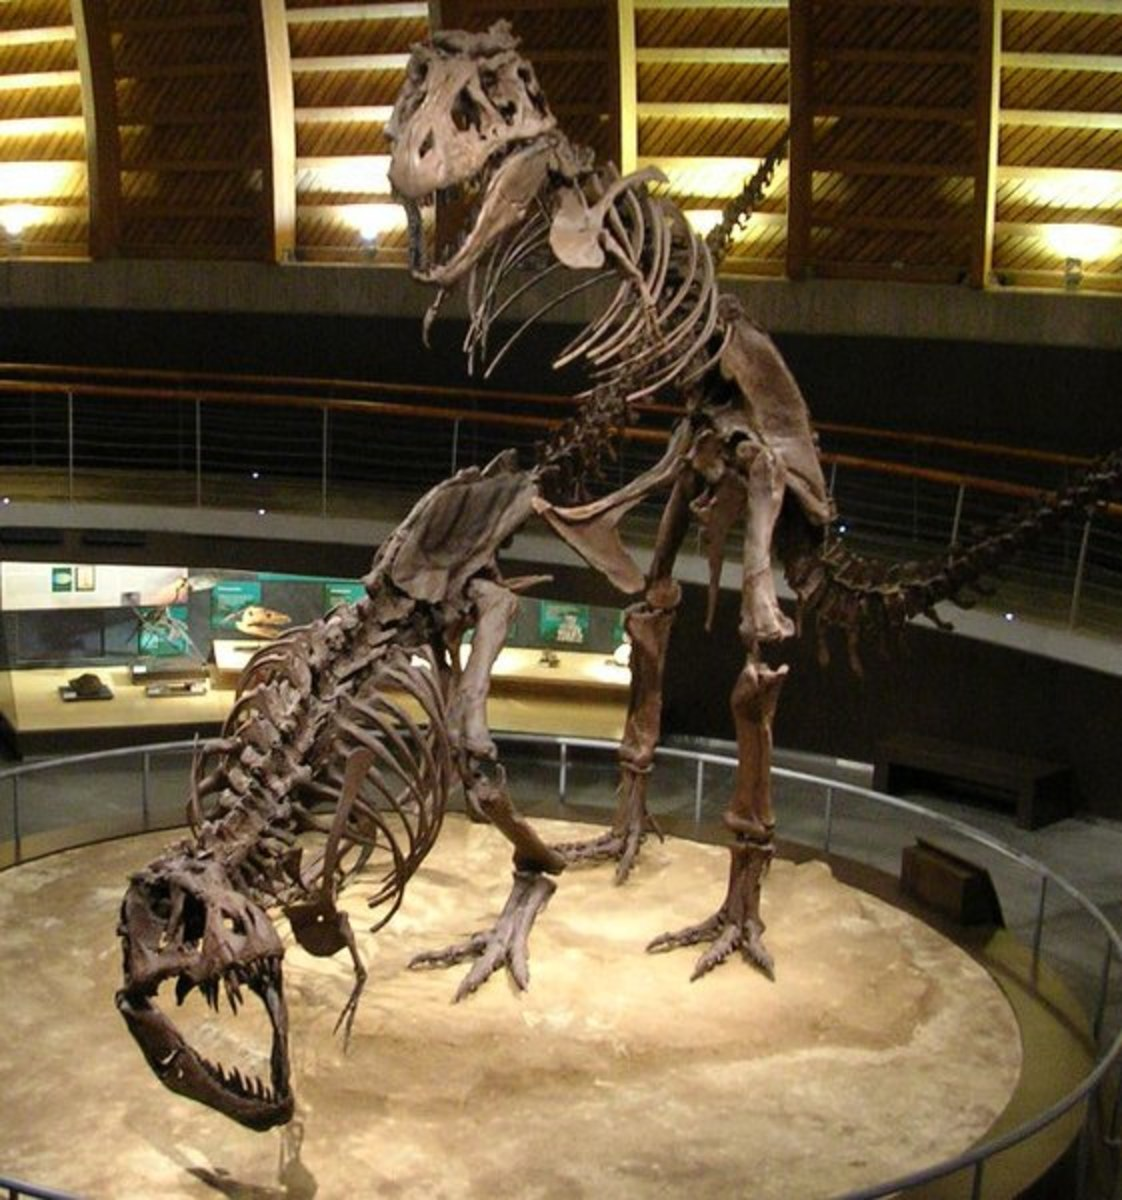 T-Rex skeletons in a mating position.